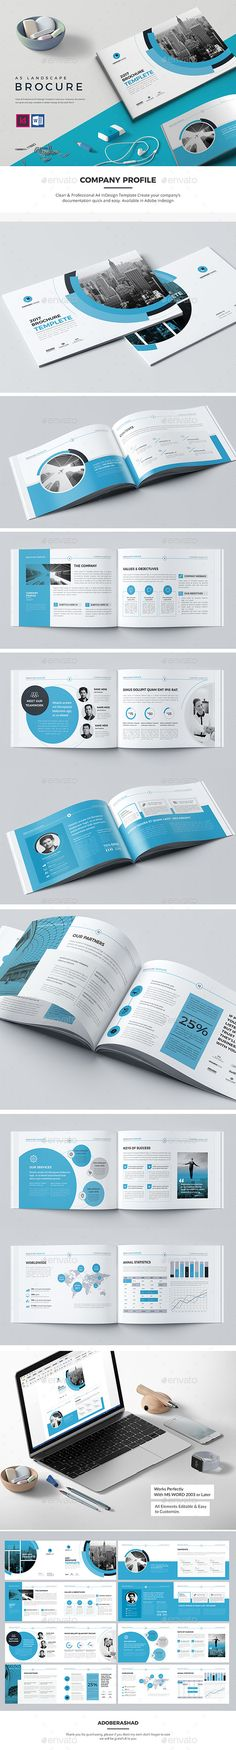 Co Landscape Brochure 16 Pages - Corporate #Brochures Download here: https://graphicriver.net/item/co-landscape-brochure-16-pages/19968179?ref=alena994